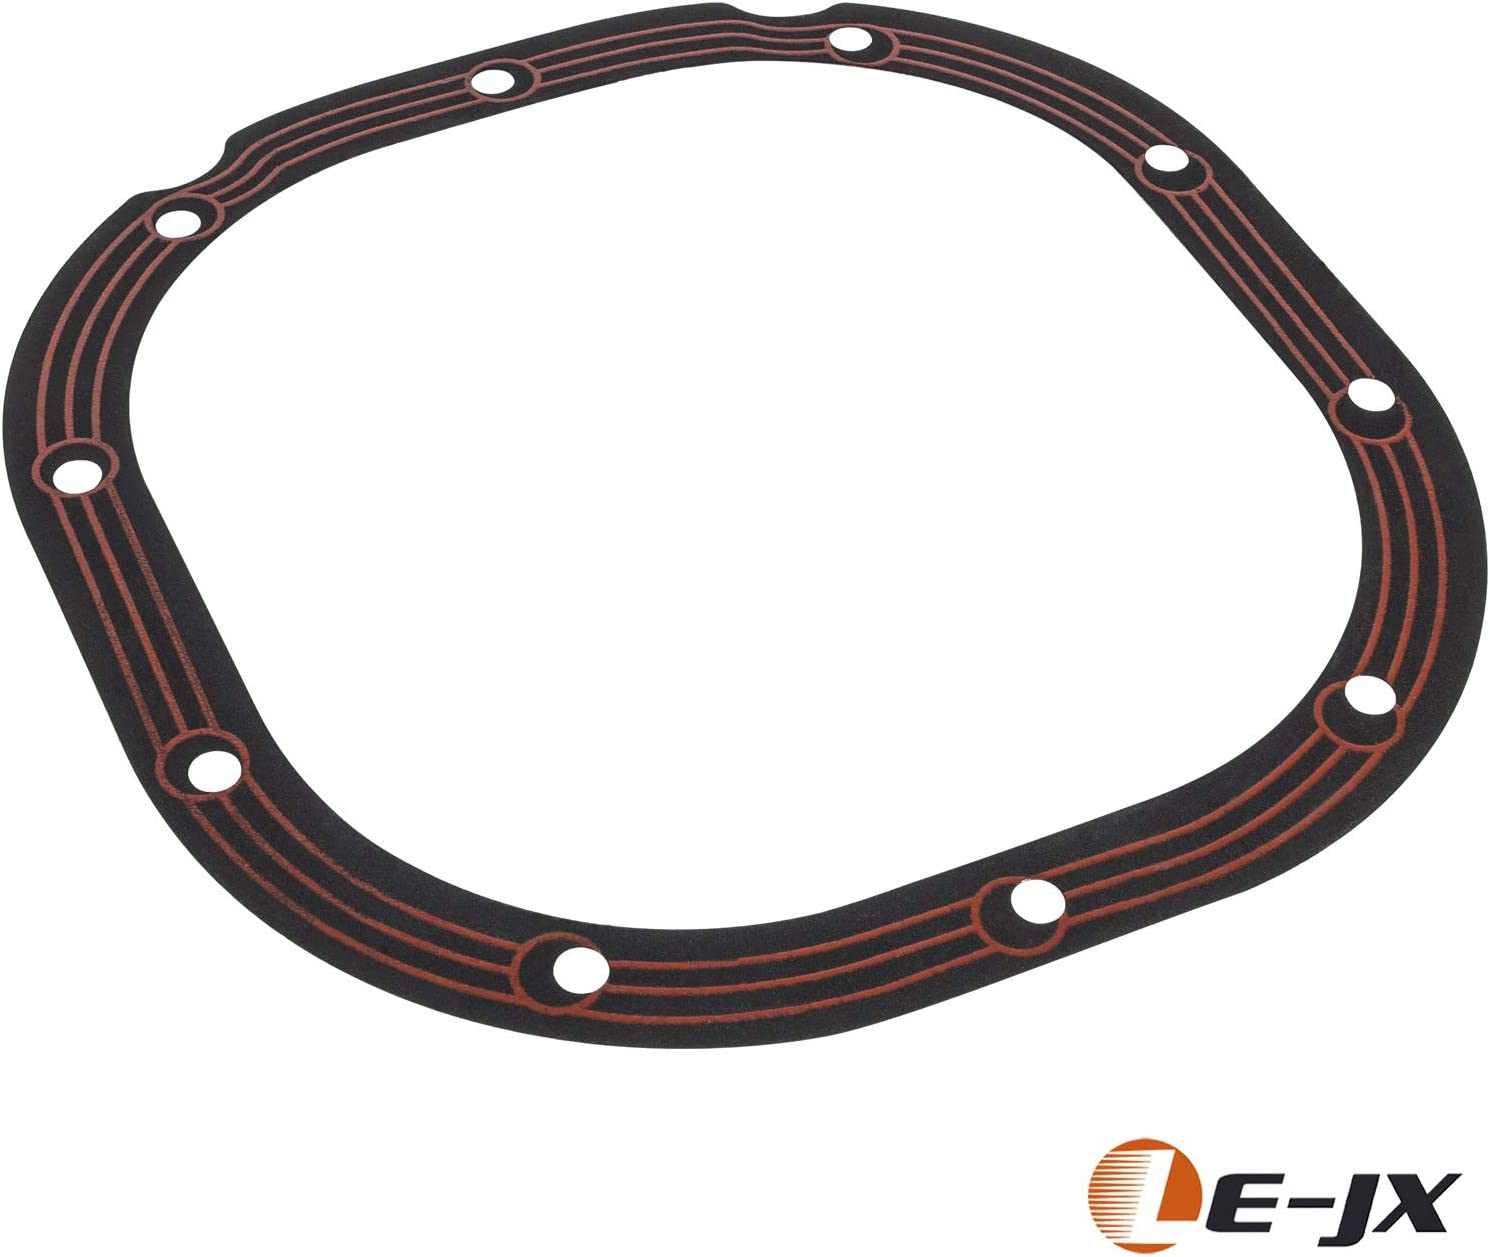 Drivetrain Sealing Gaskets for 1986-2014 Ford 8.8 Axles F880 LE-JX F880 Rear Differential Cover Gasket